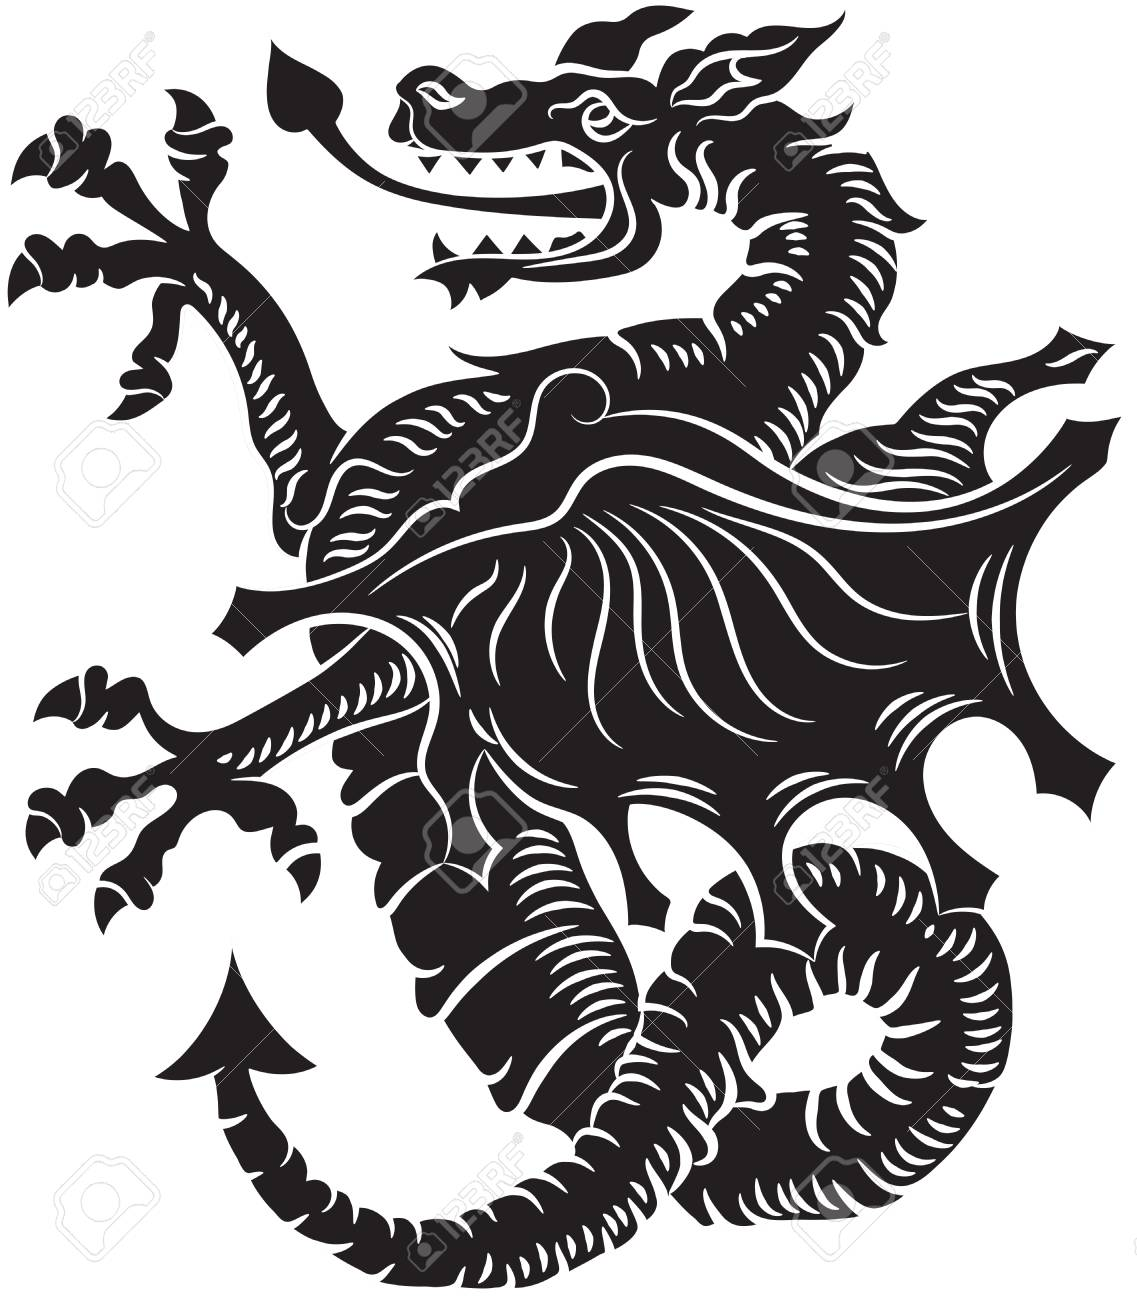 tribal tattoo dragon vector illustration on white background royalty rh 123rf com dragon vector free dragon vectoriel free